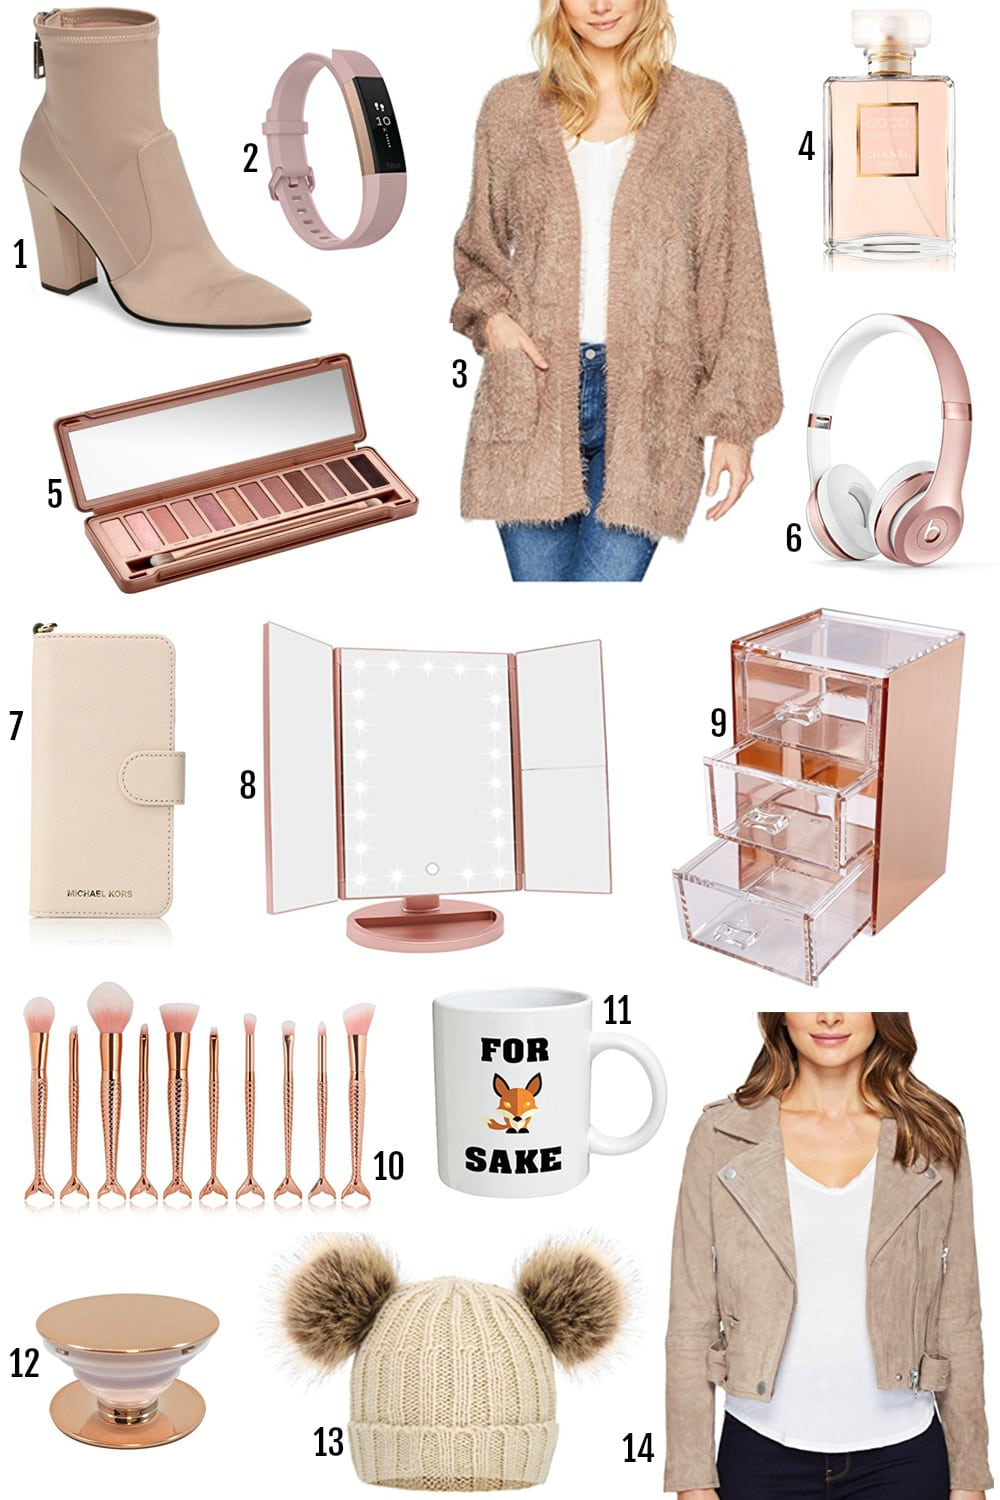 the best gifts for female young adults | rose gold gifts | urban decay naked 3 palette | rose gold phone accessories | gifts for teenagers | stocking stuffers